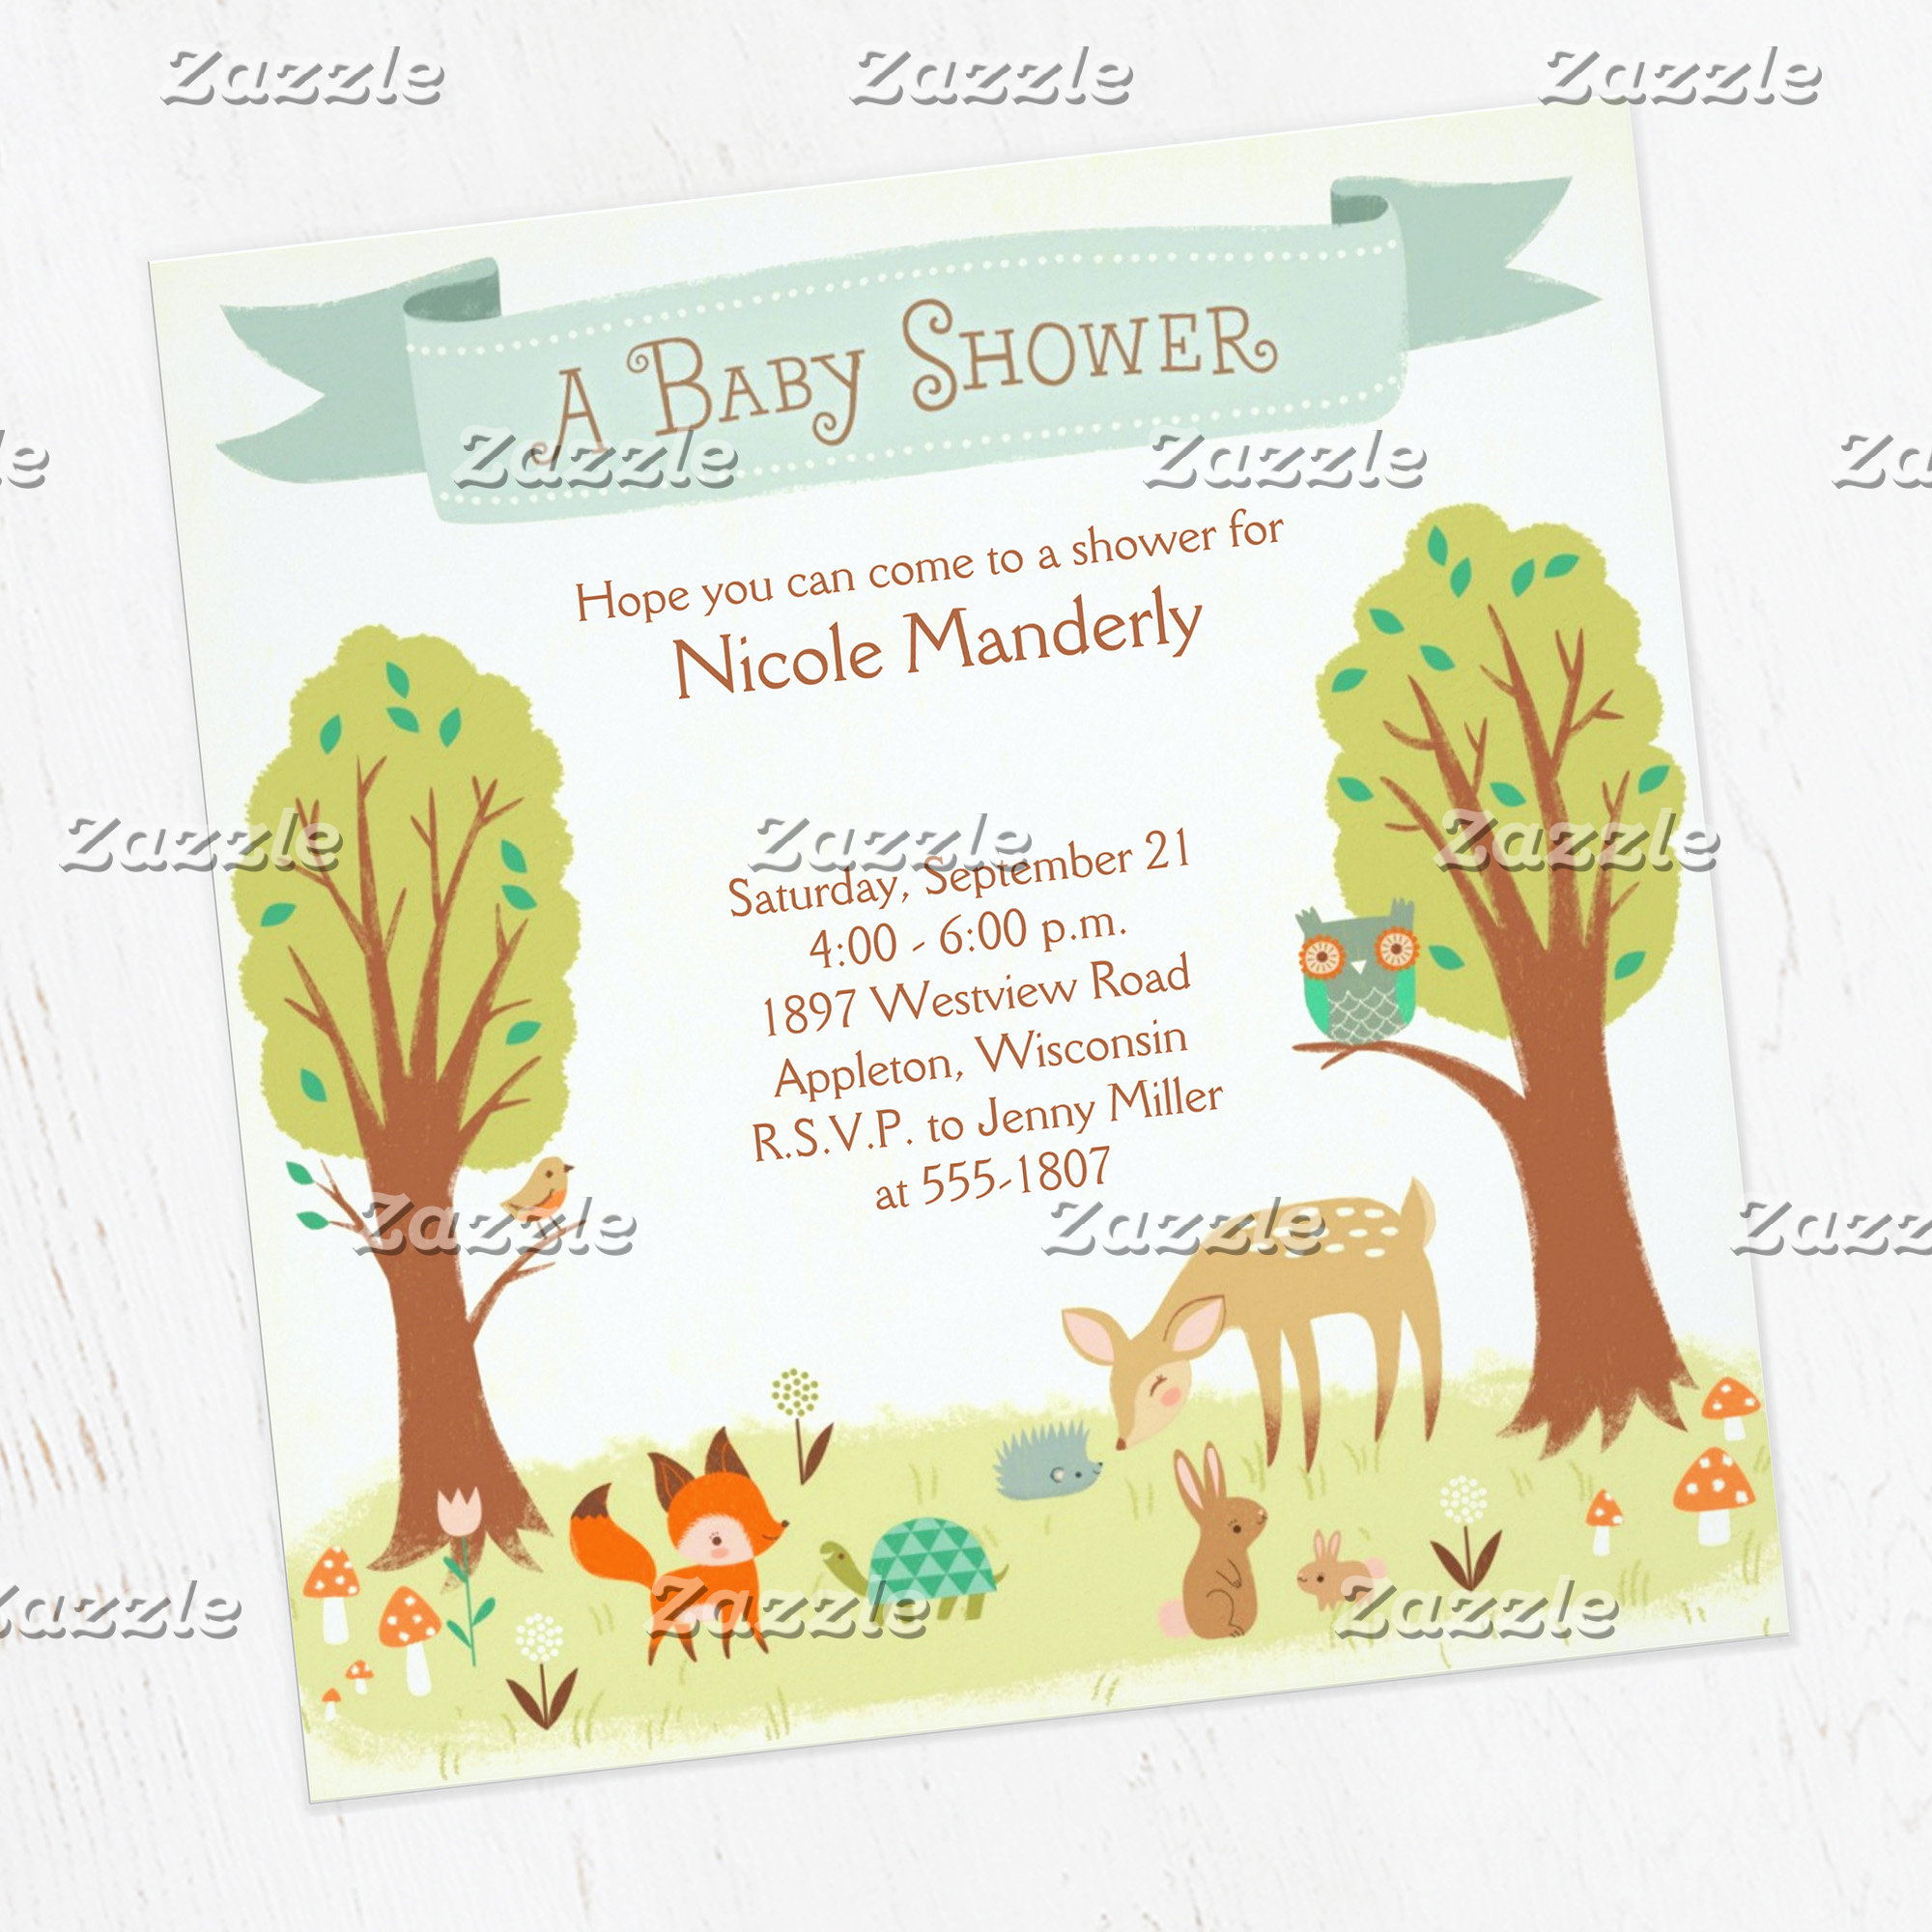 Whimsical Woodland Creatures Shower Suite